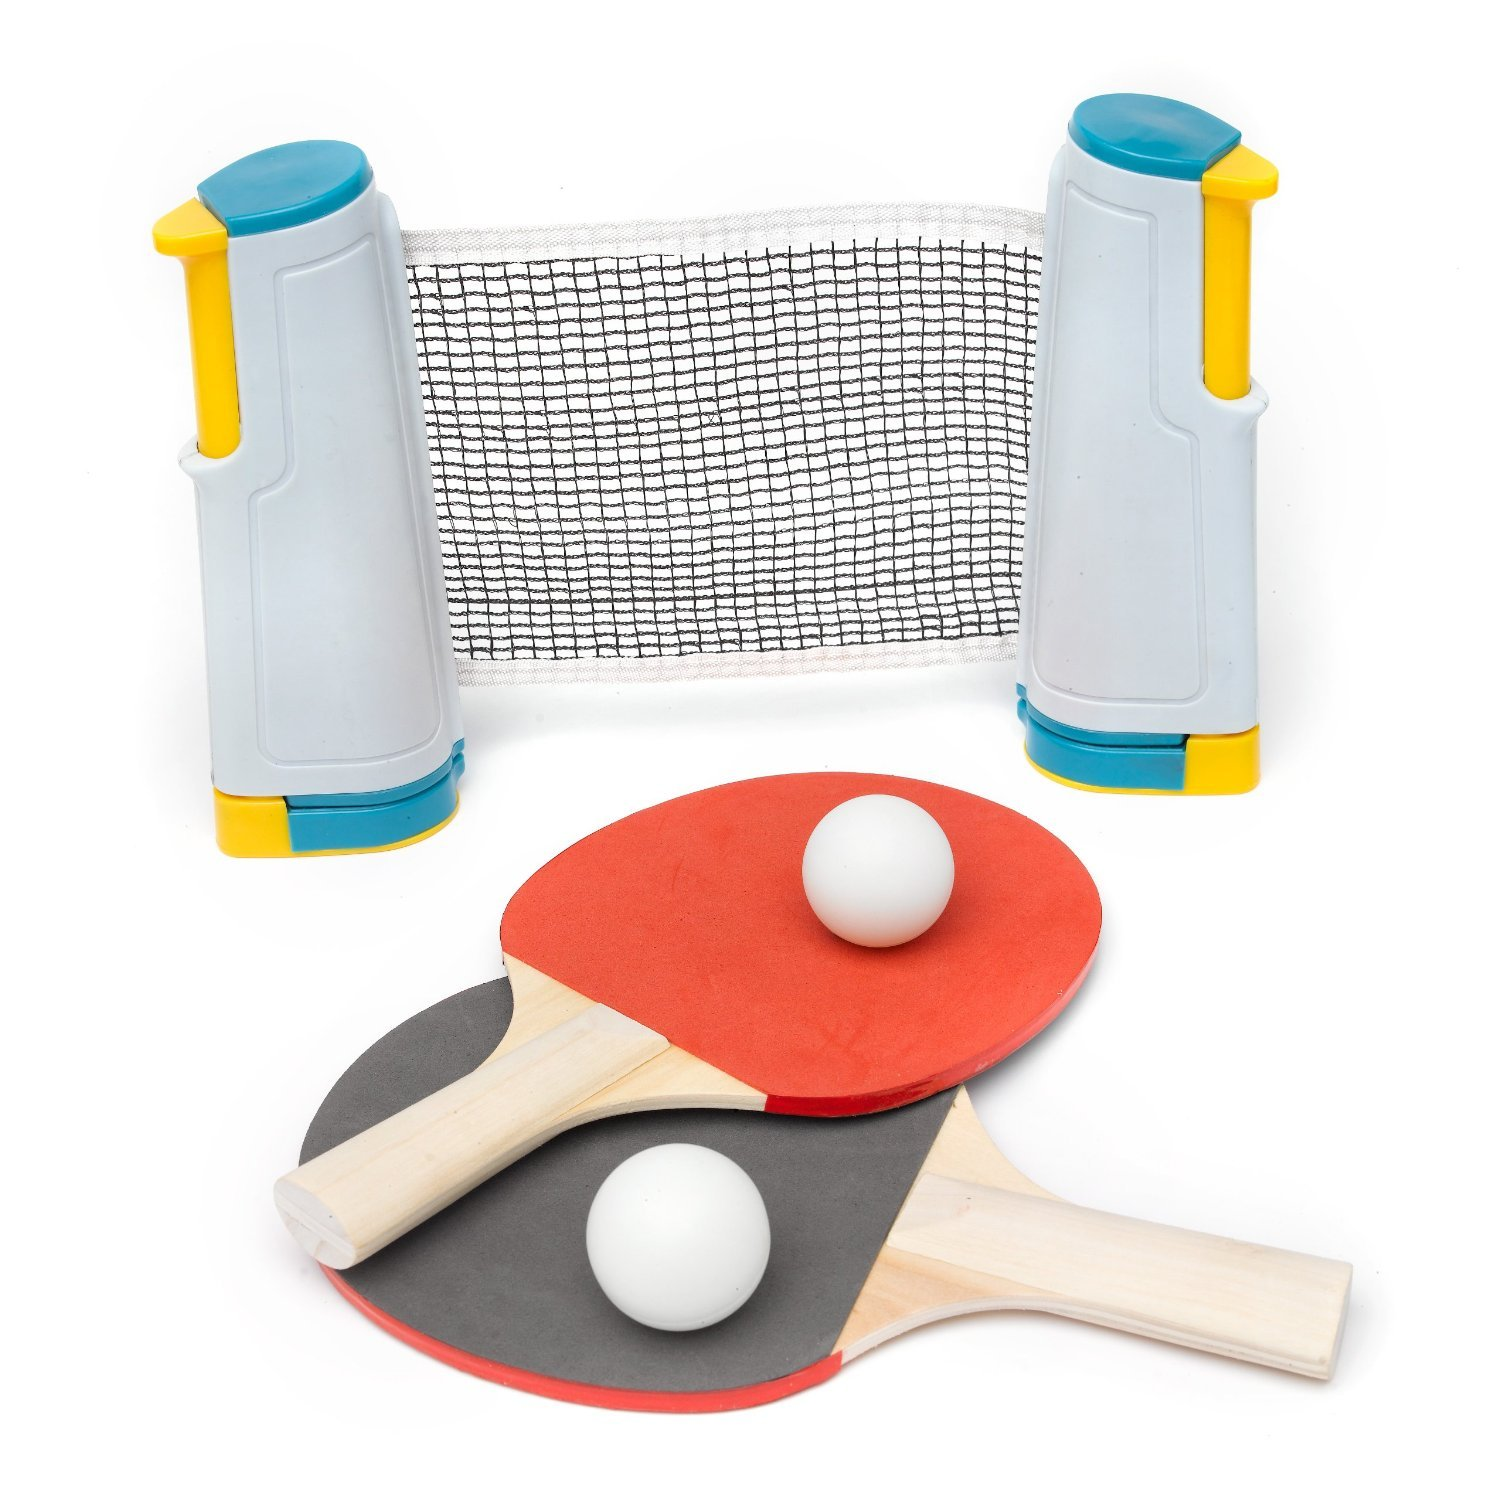 Amazon.com Instant Table Tennis ~ Play Table Tennis on any table! Toys \u0026 Games  sc 1 st  Amazon.com & Amazon.com: Instant Table Tennis ~ Play Table Tennis on any table ...